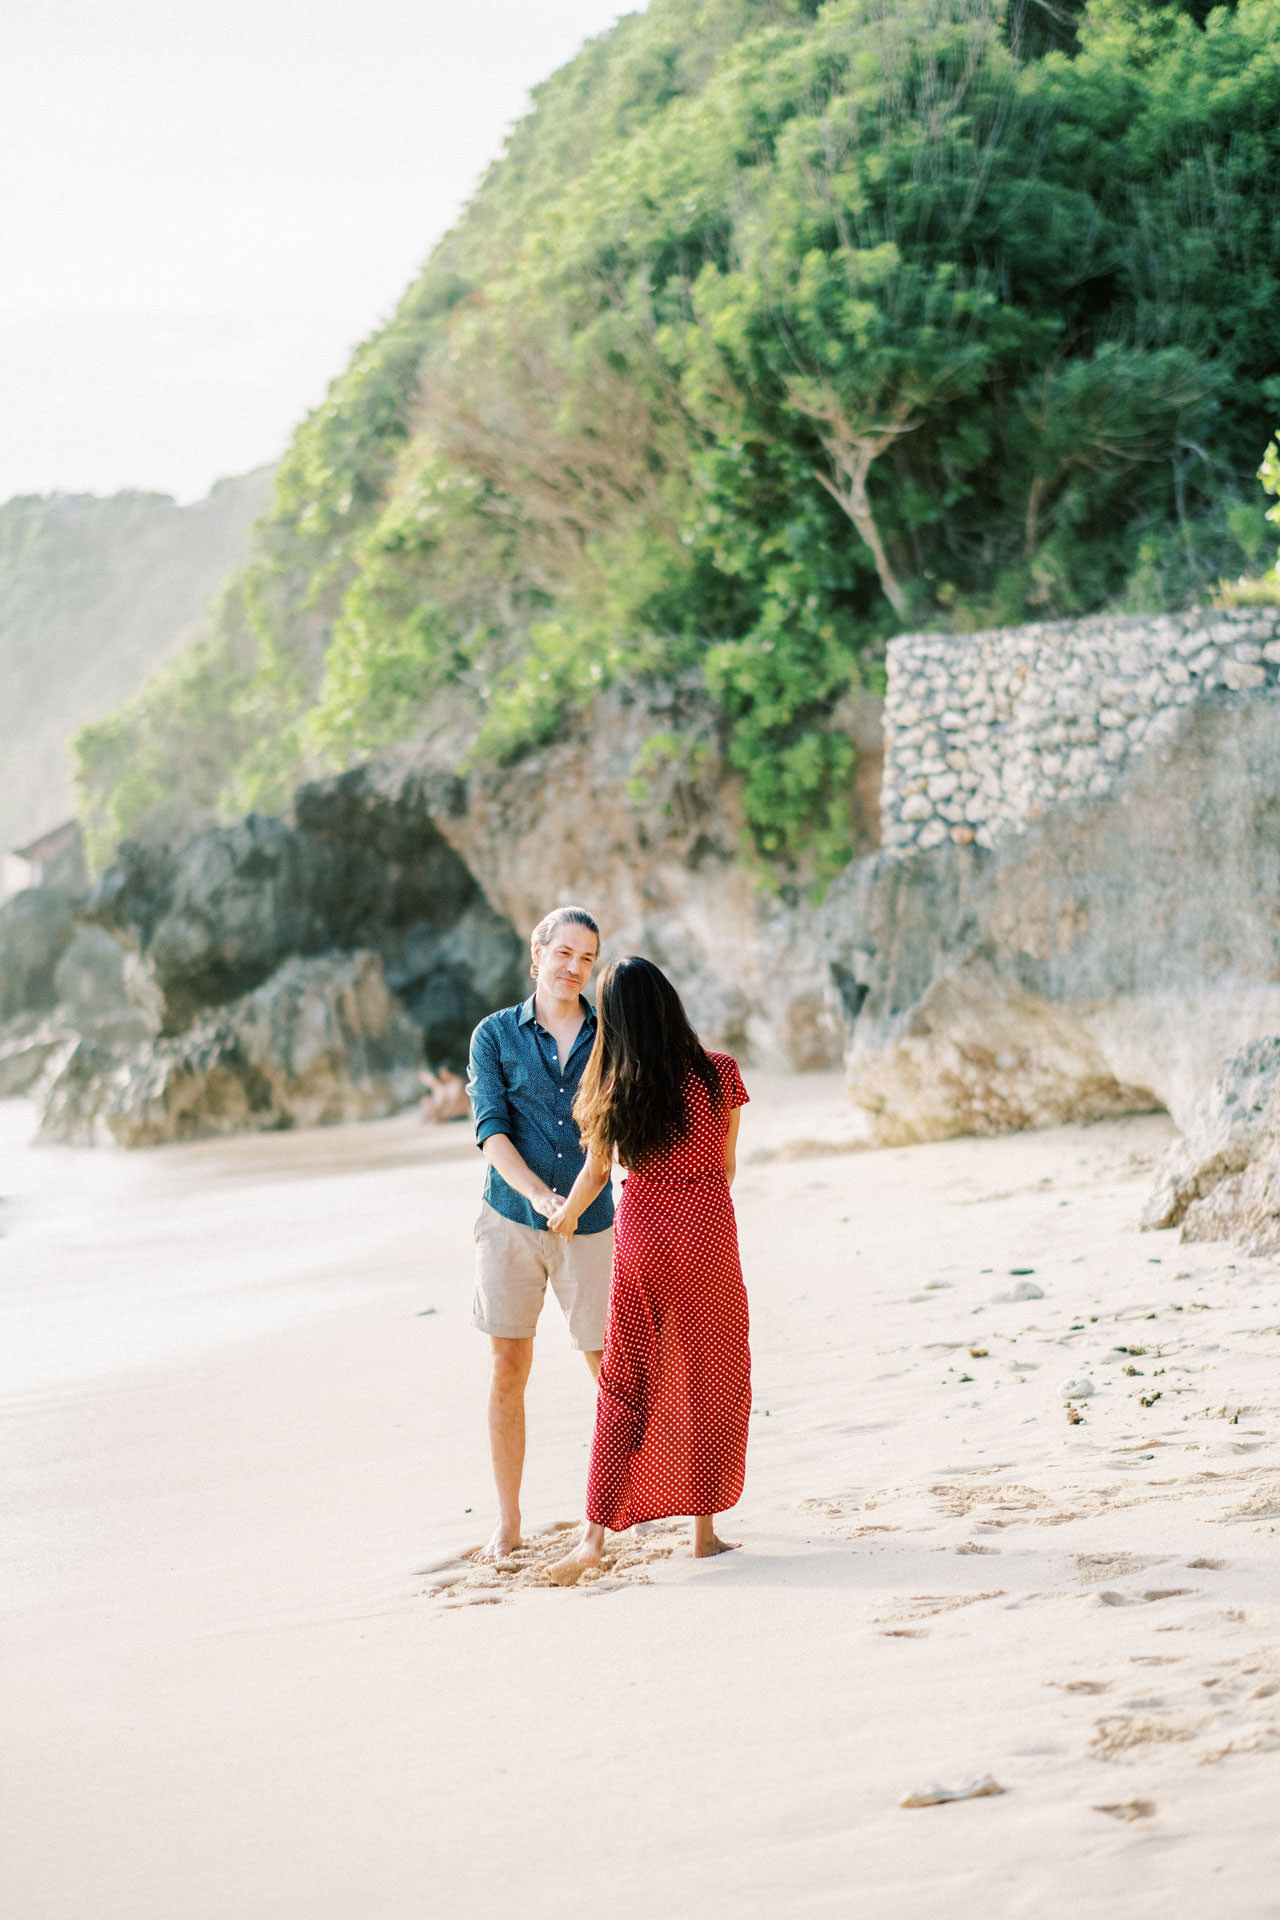 Bali's Beach Marriage Proposal with a Proposal Video! 21